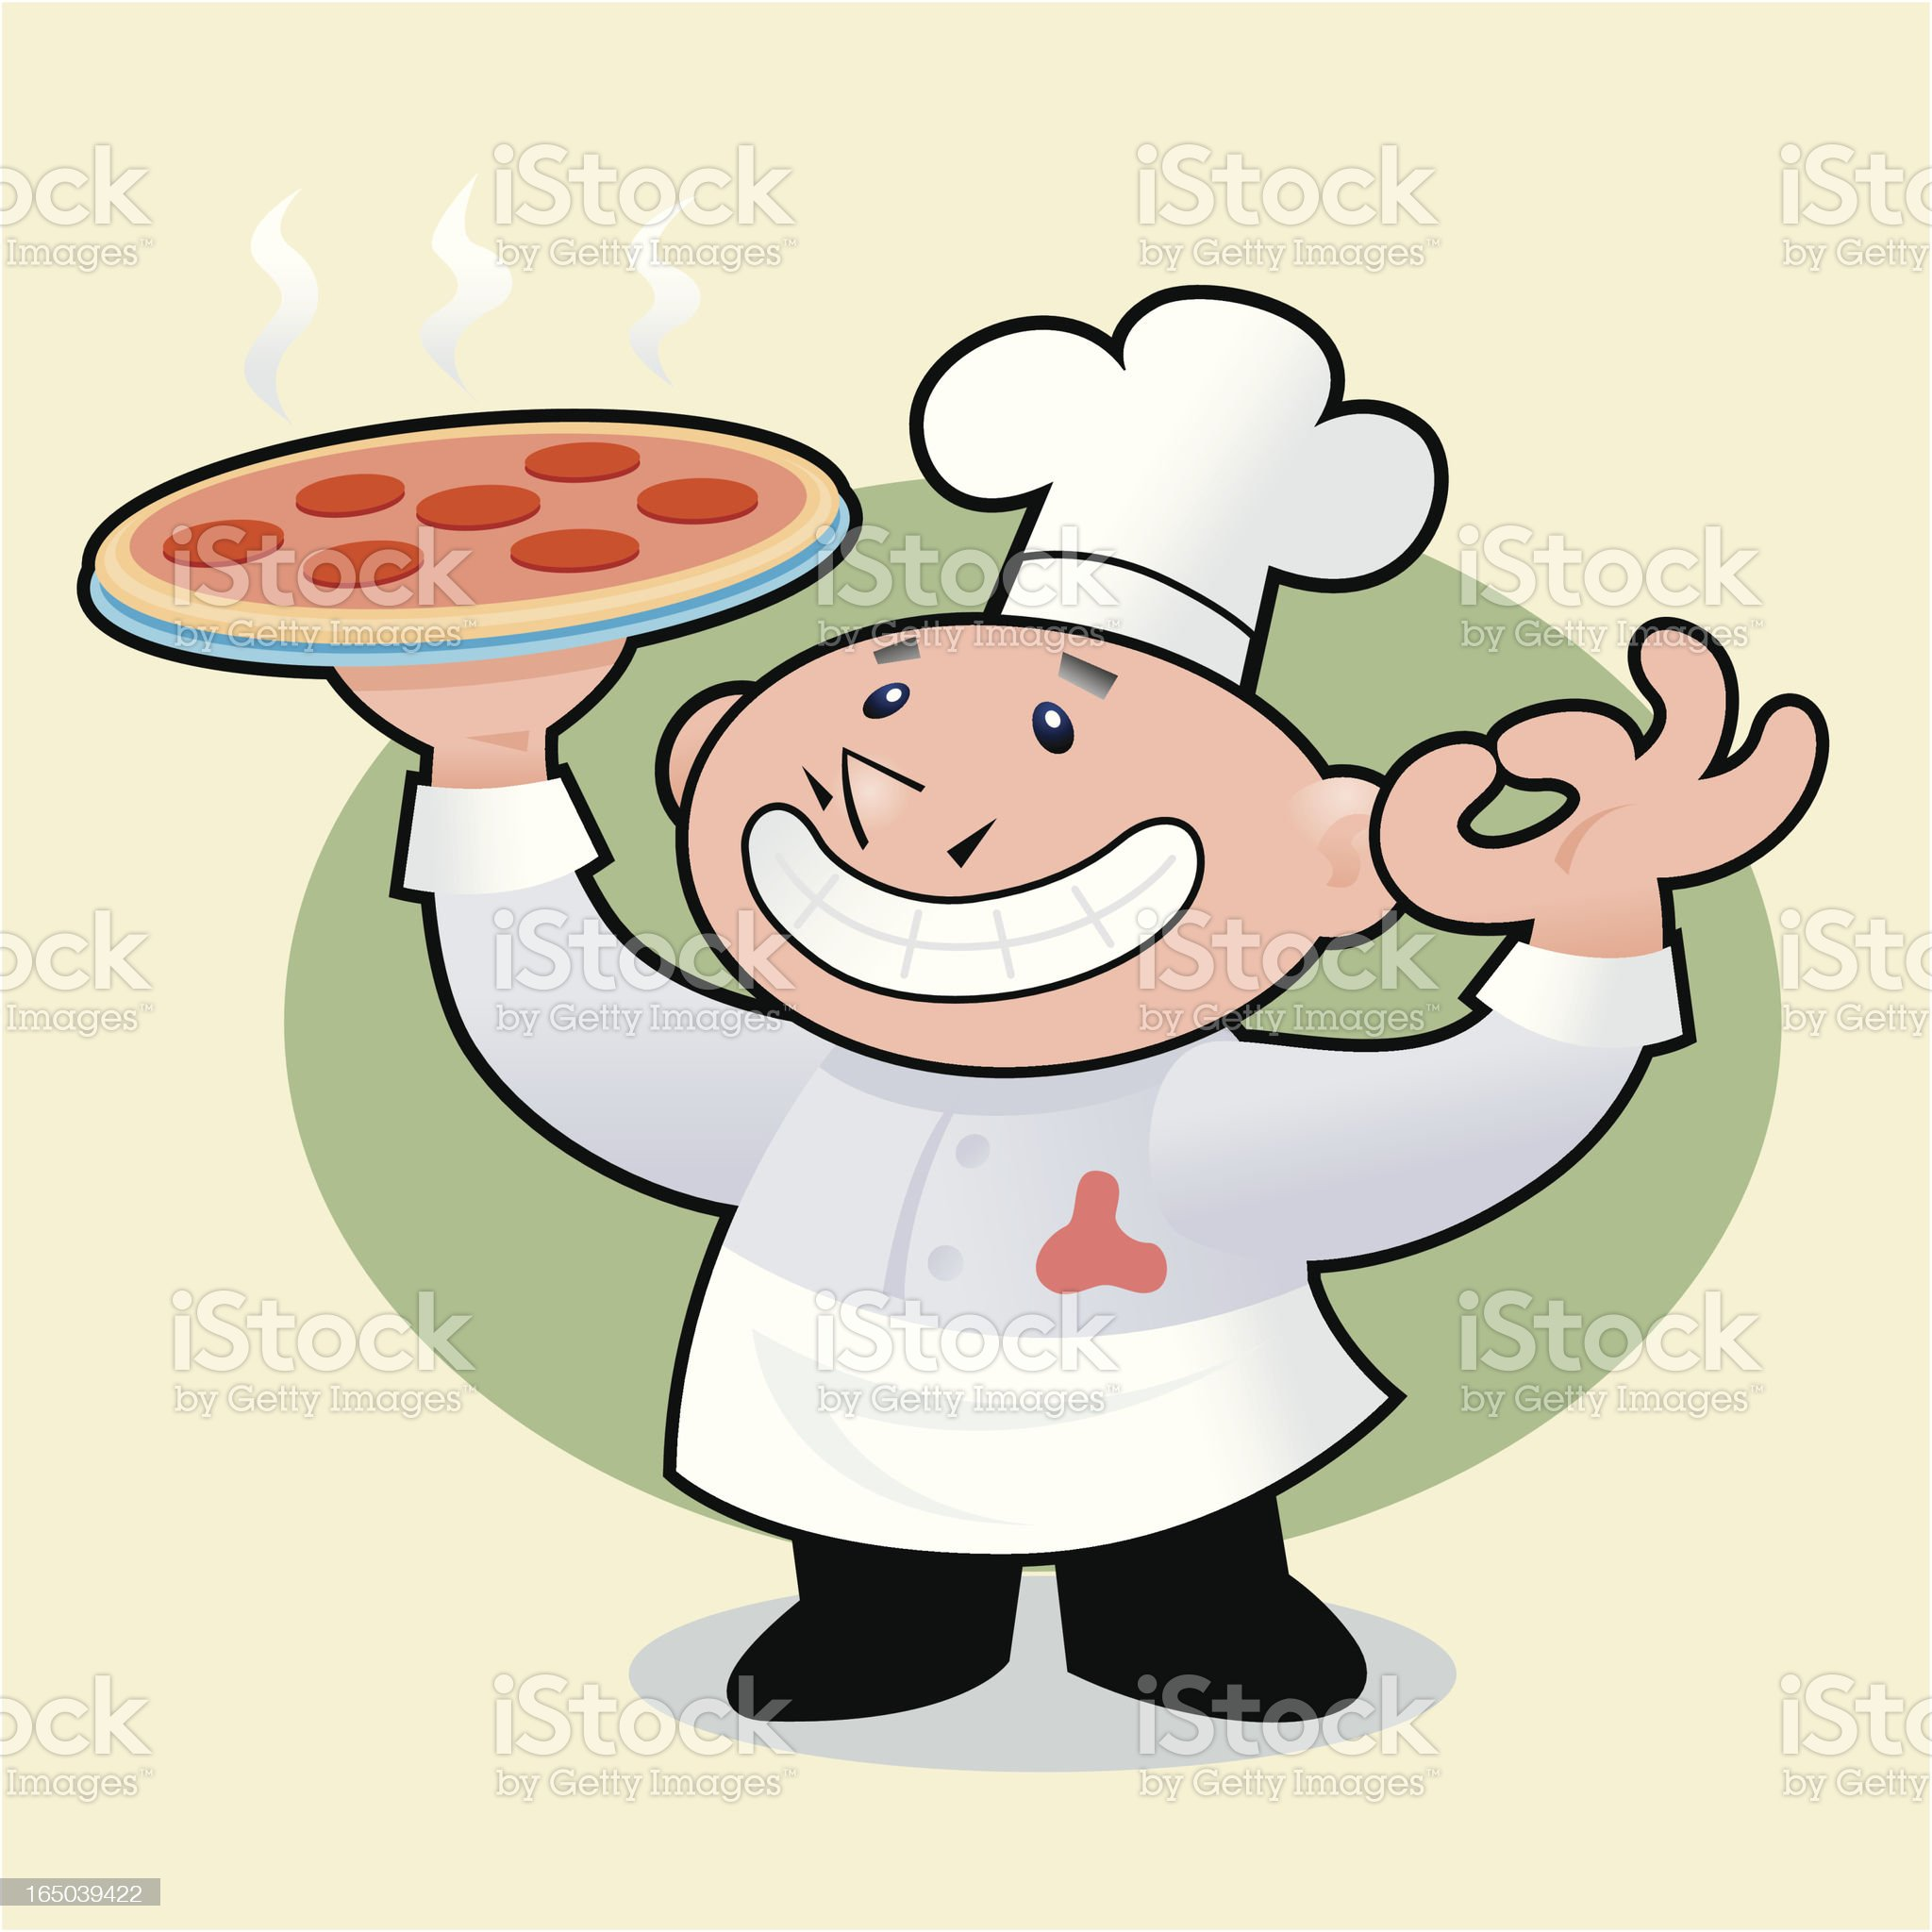 Pizzaman royalty-free stock vector art